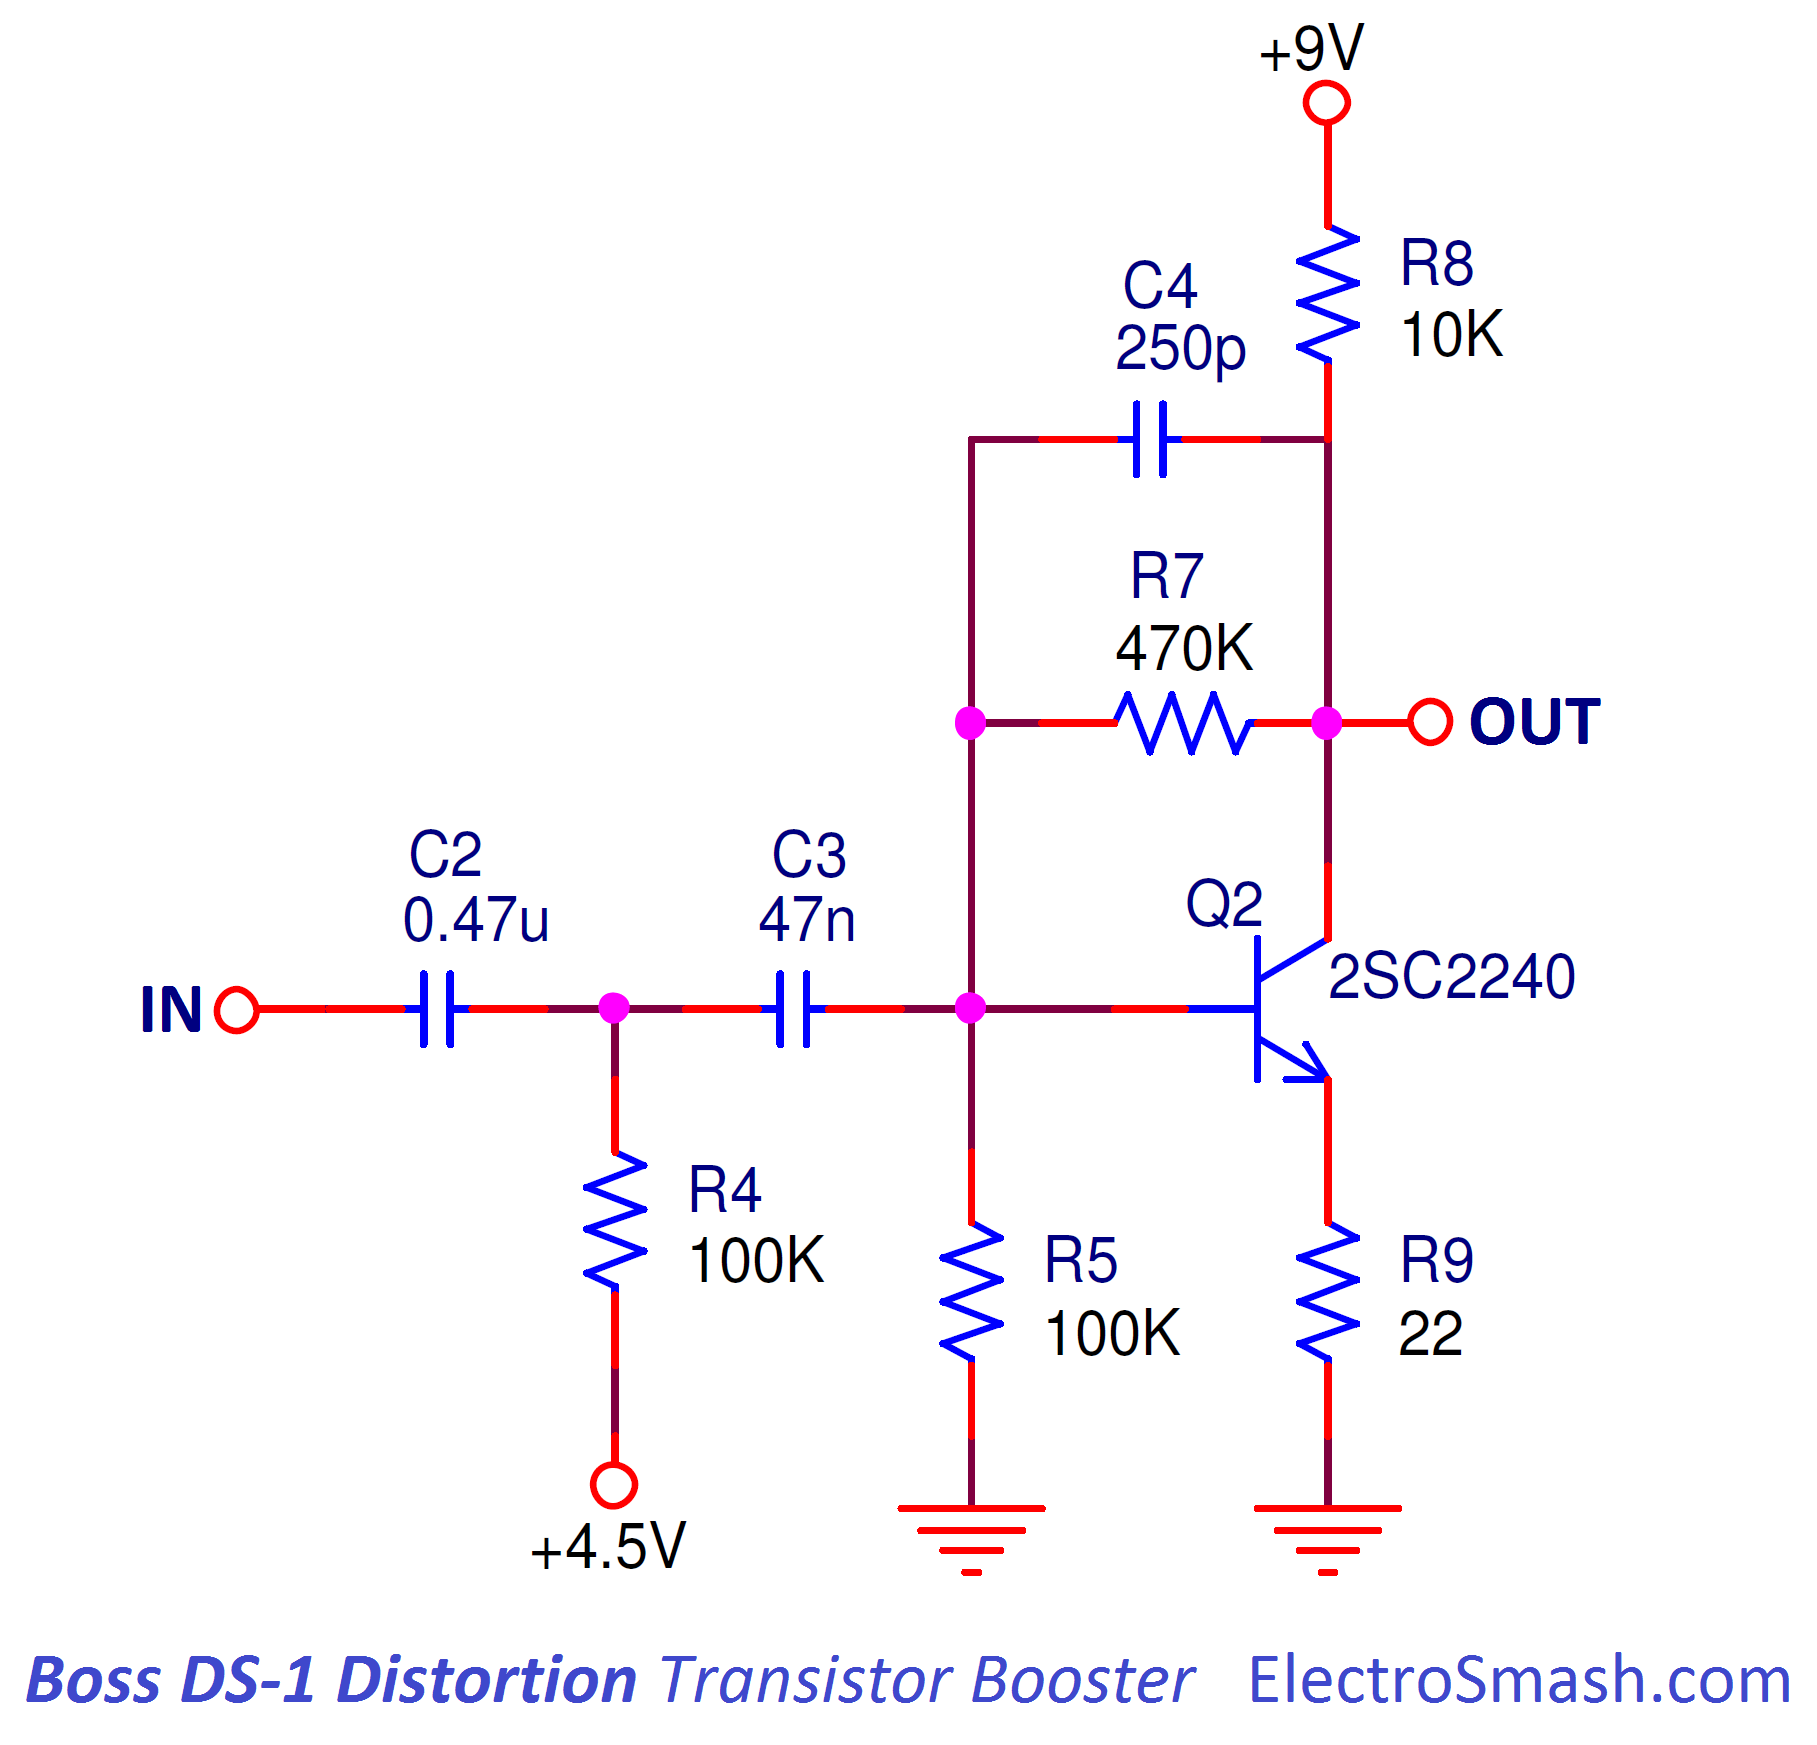 boss ds1 distortion transistor booster